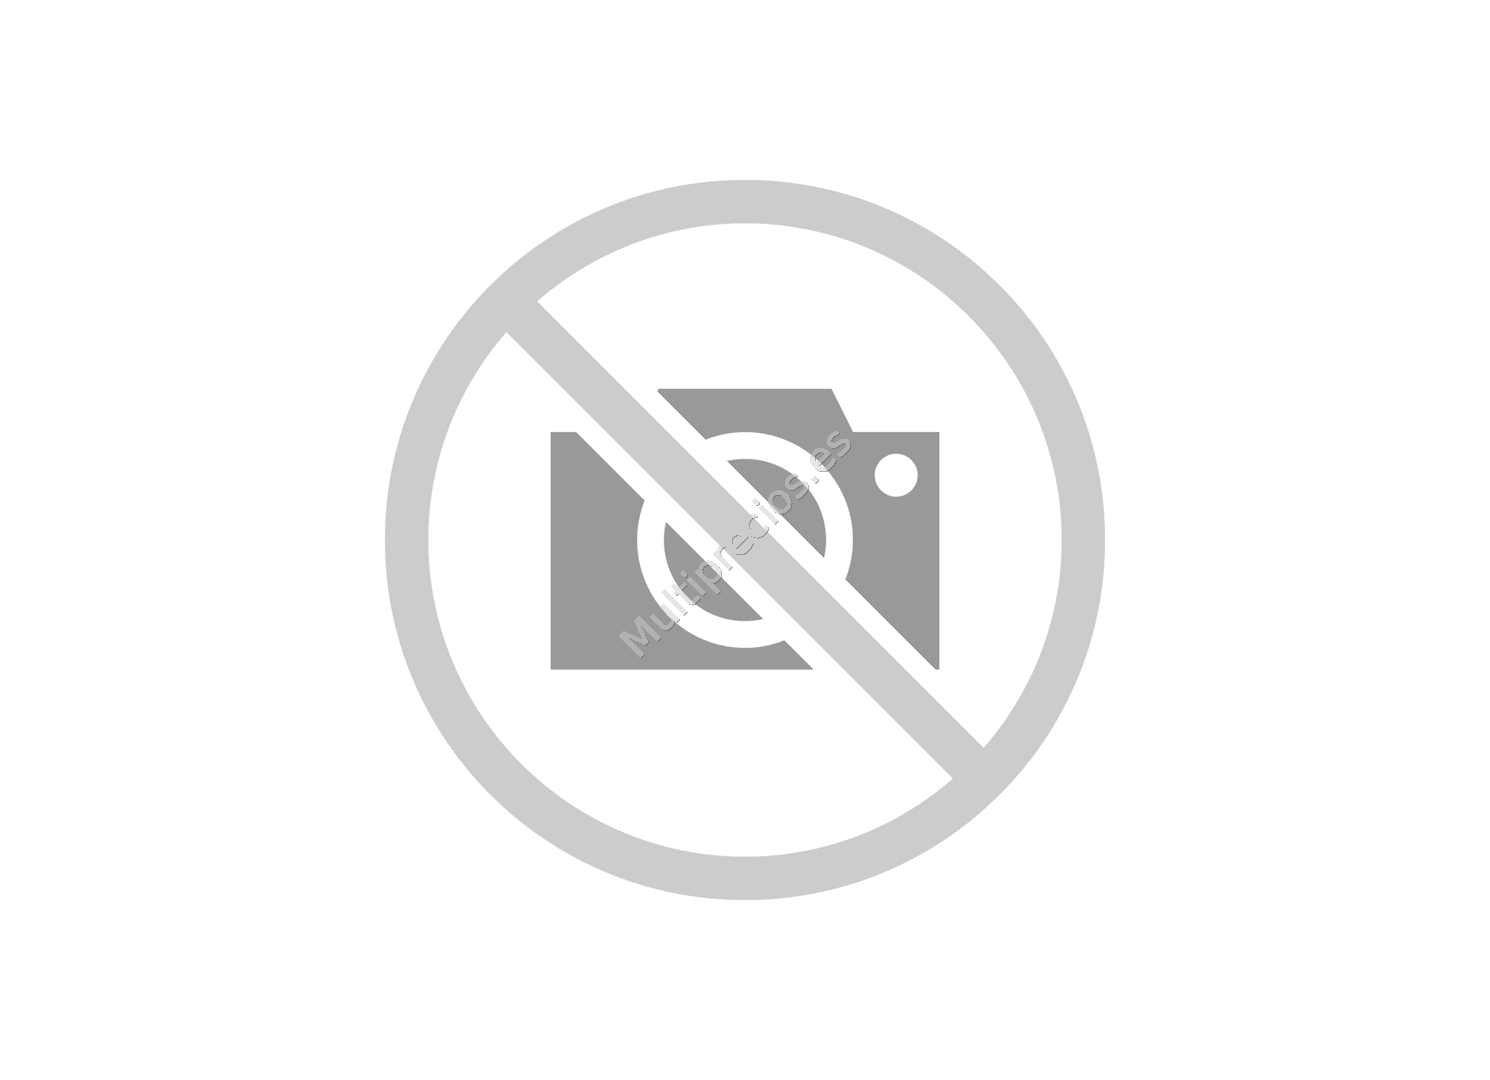 Felpudo desinfeccion 45x80